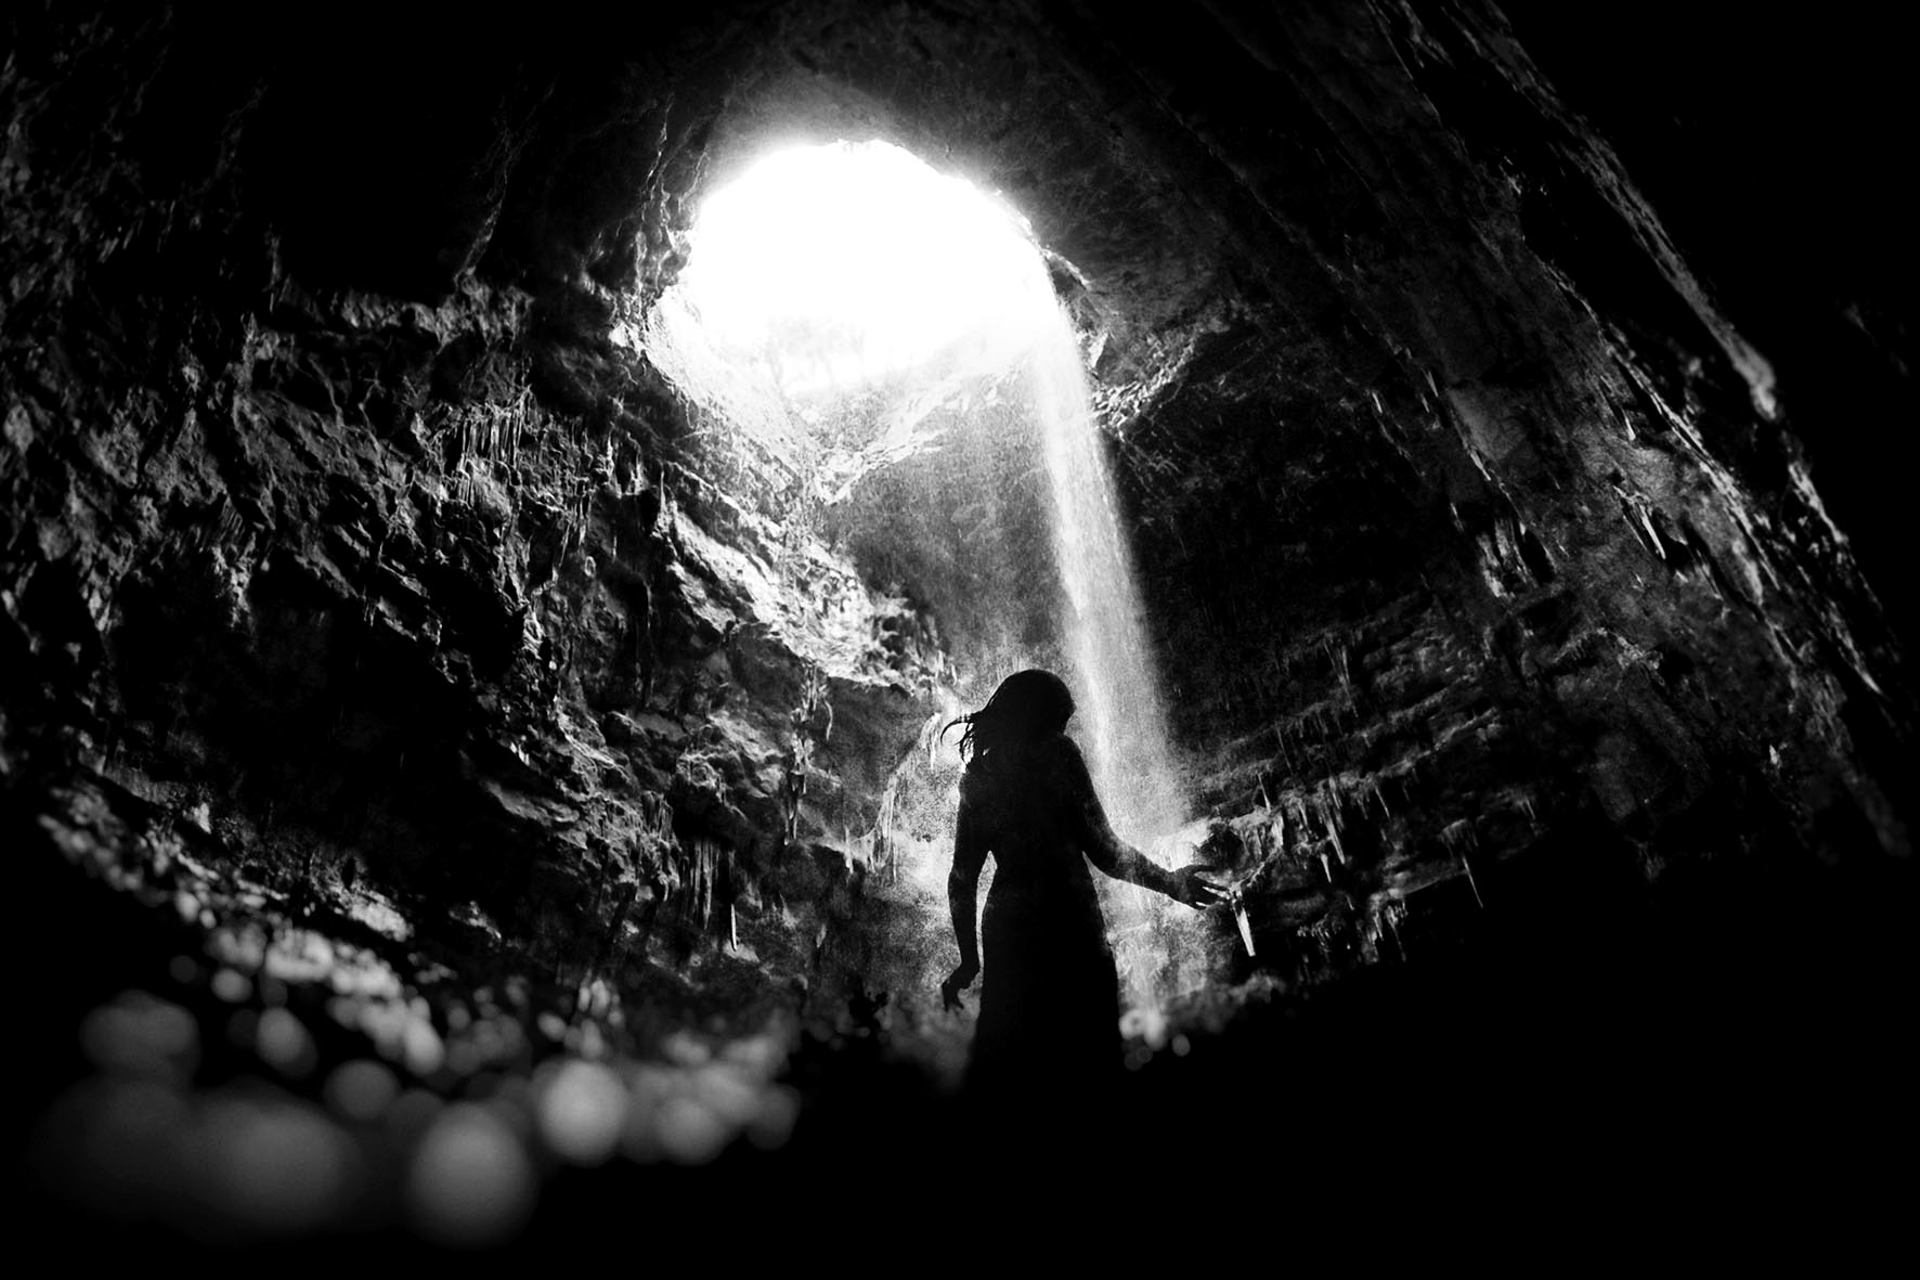 The Miraculous Cave